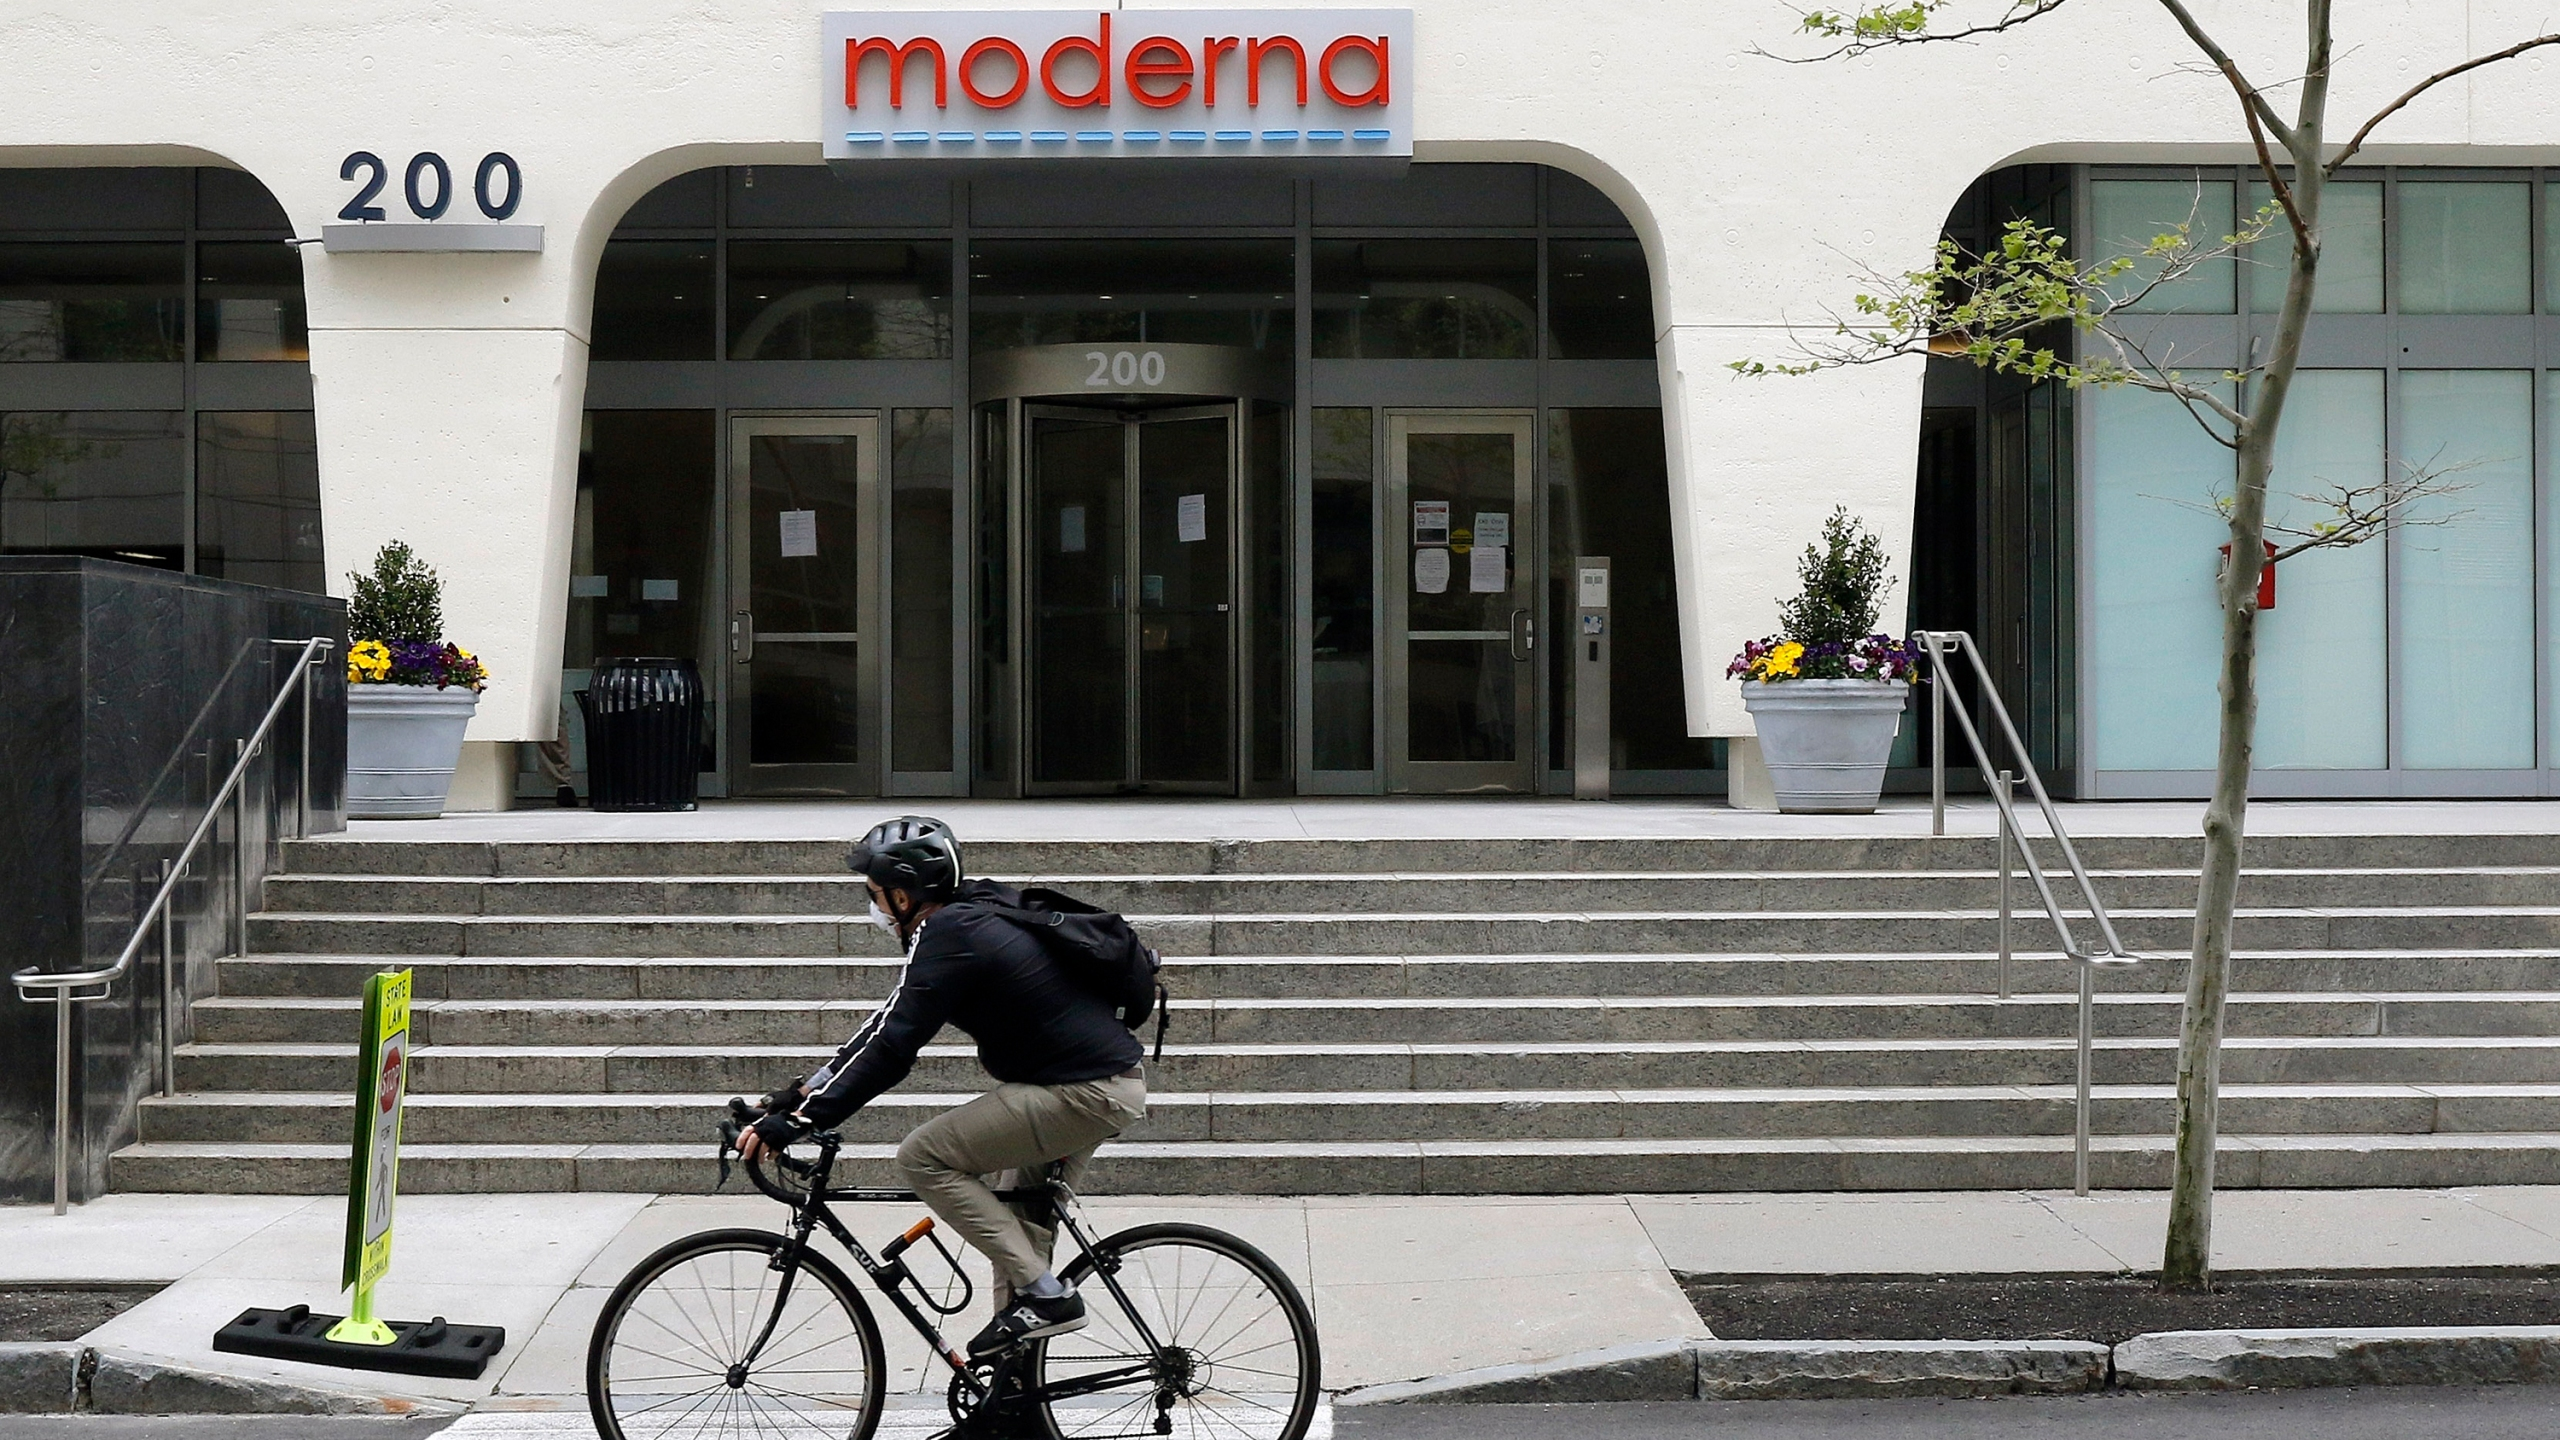 Moderna (AP Photo/Bill Sikes)